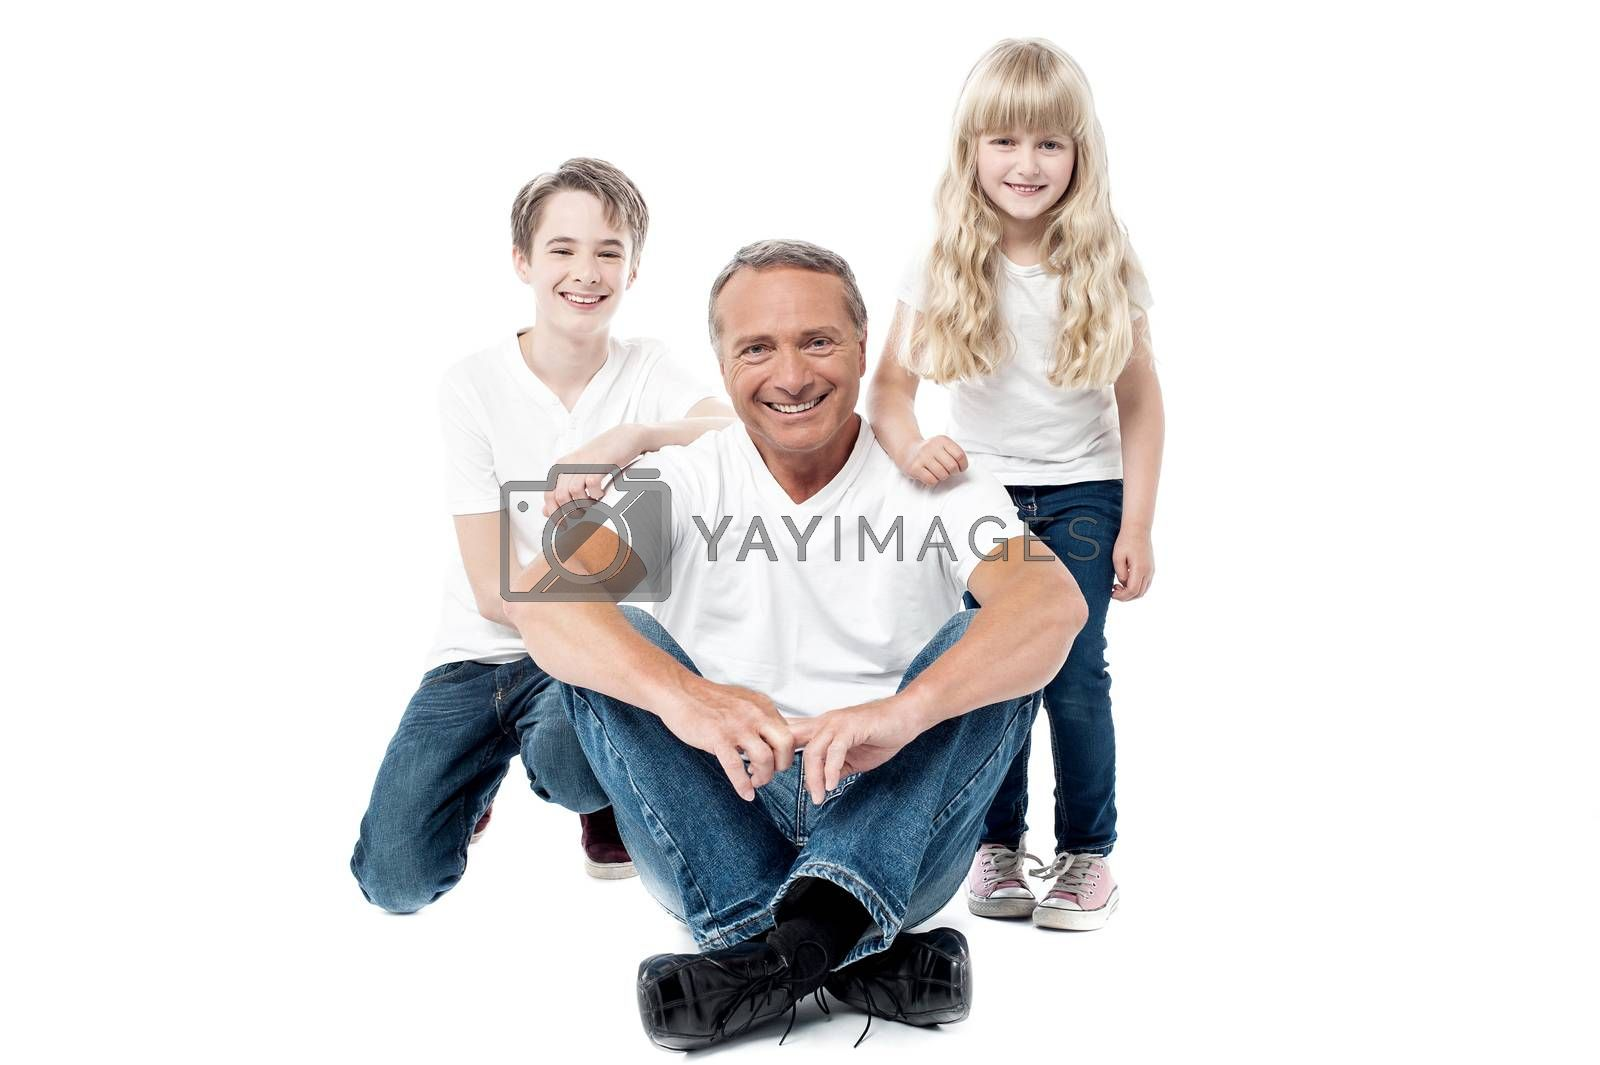 We are the happy family by stockyimages